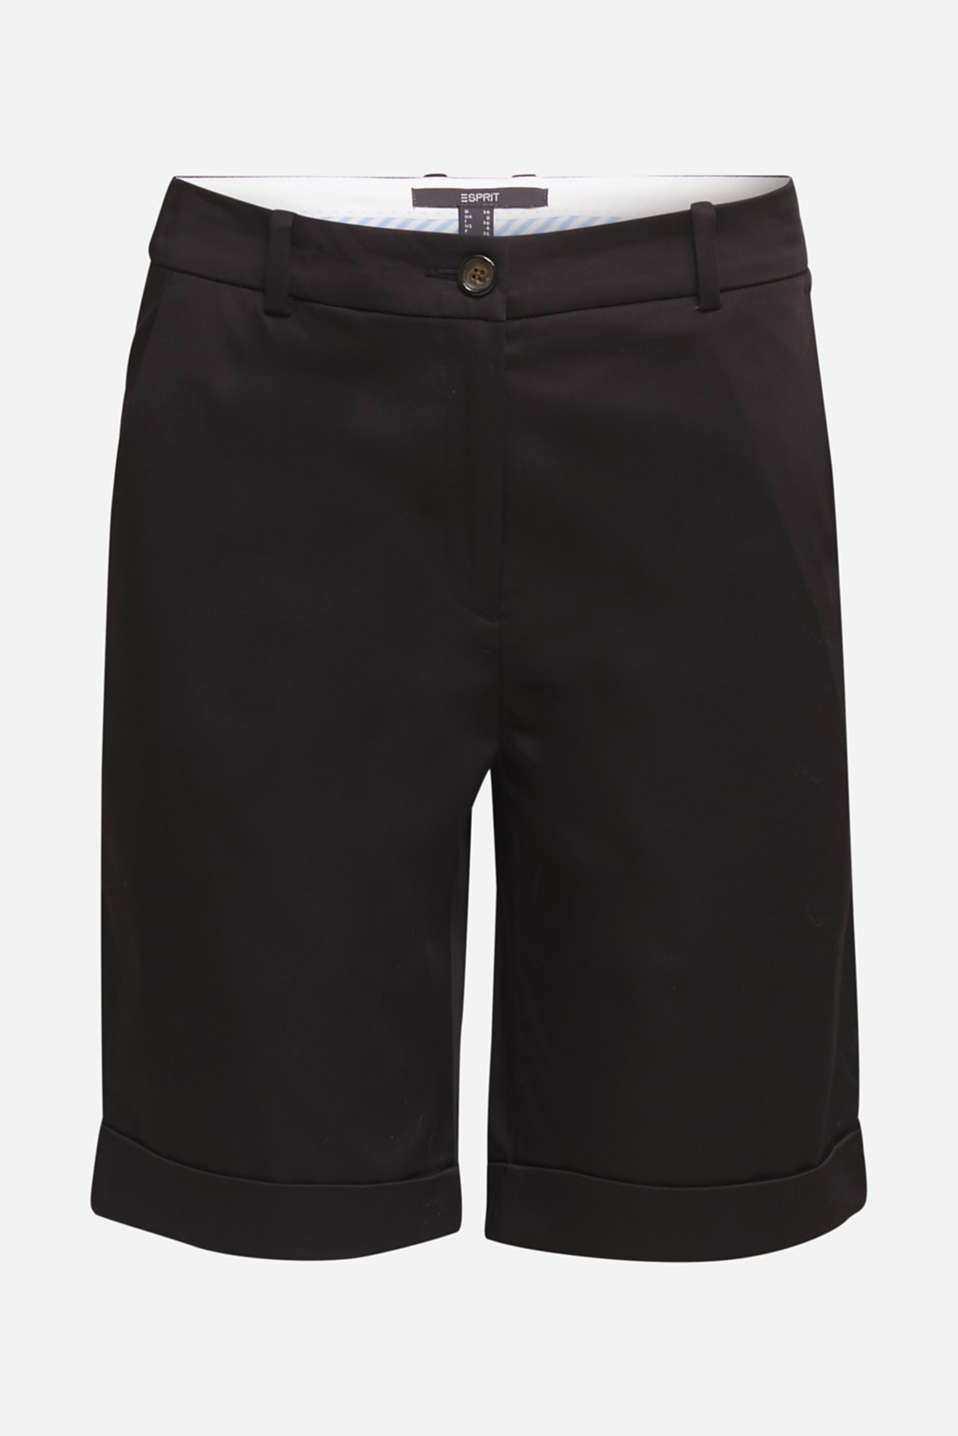 Stretchy satined Bermuda shorts, BLACK, detail image number 8